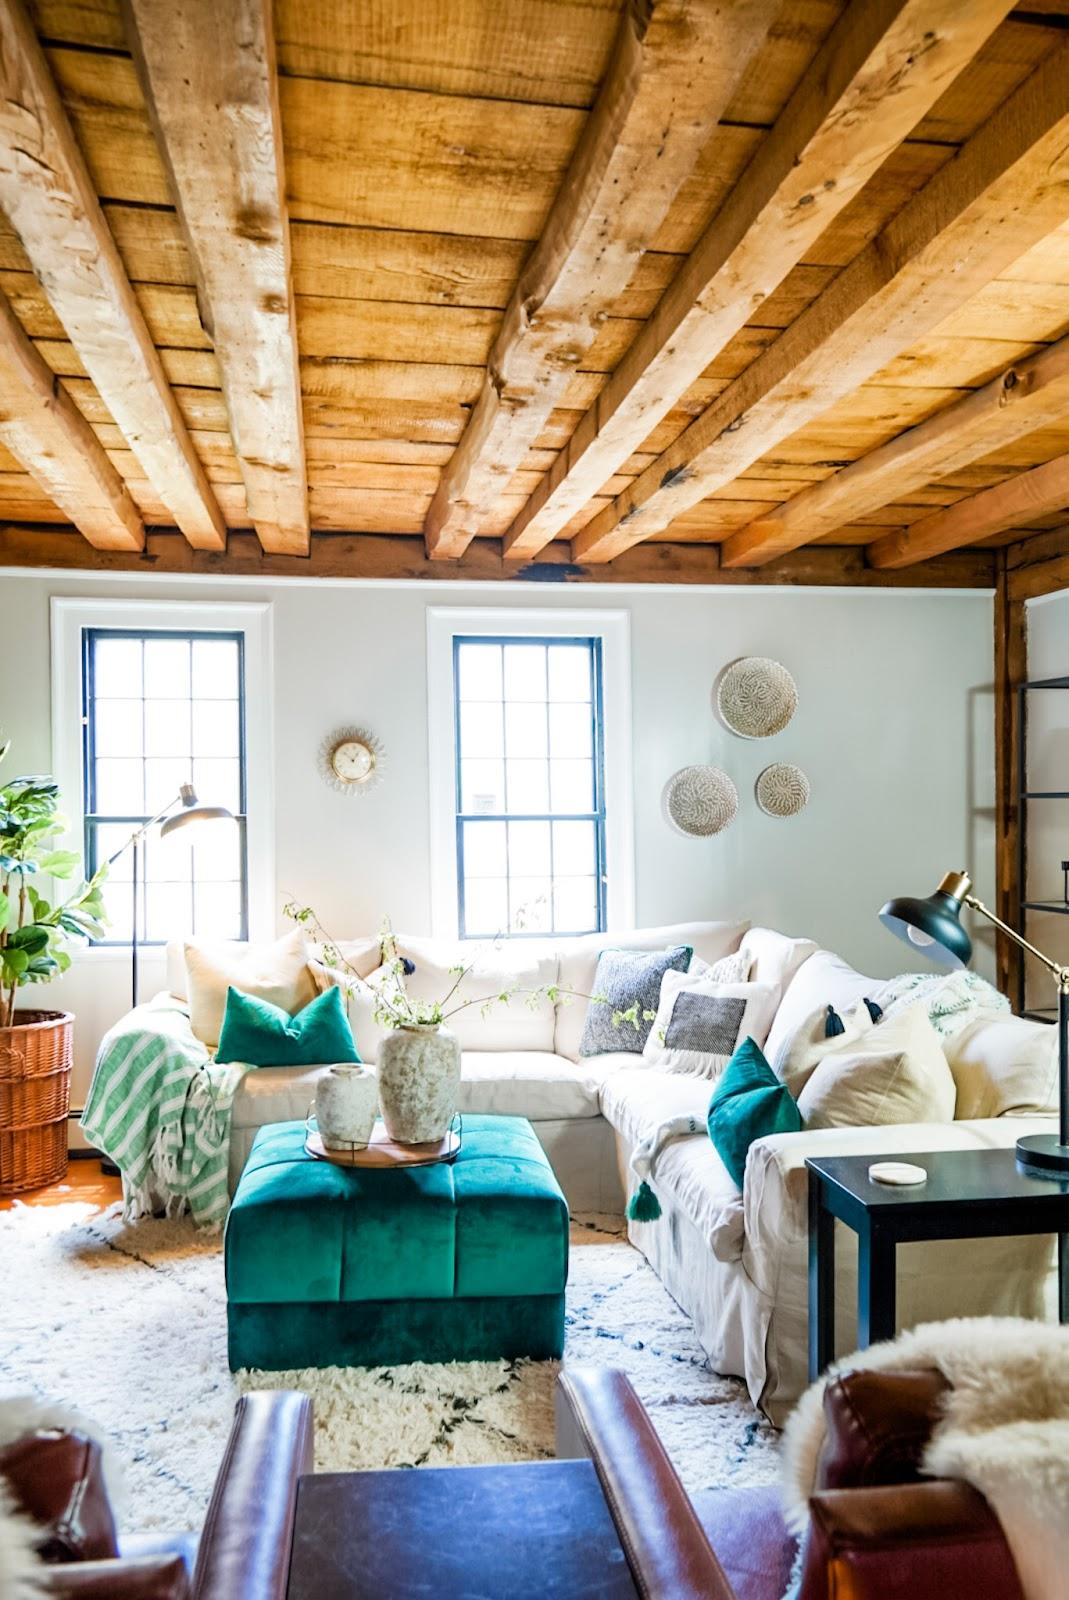 Living room with a sectional slipcover couch and emerald green accents.